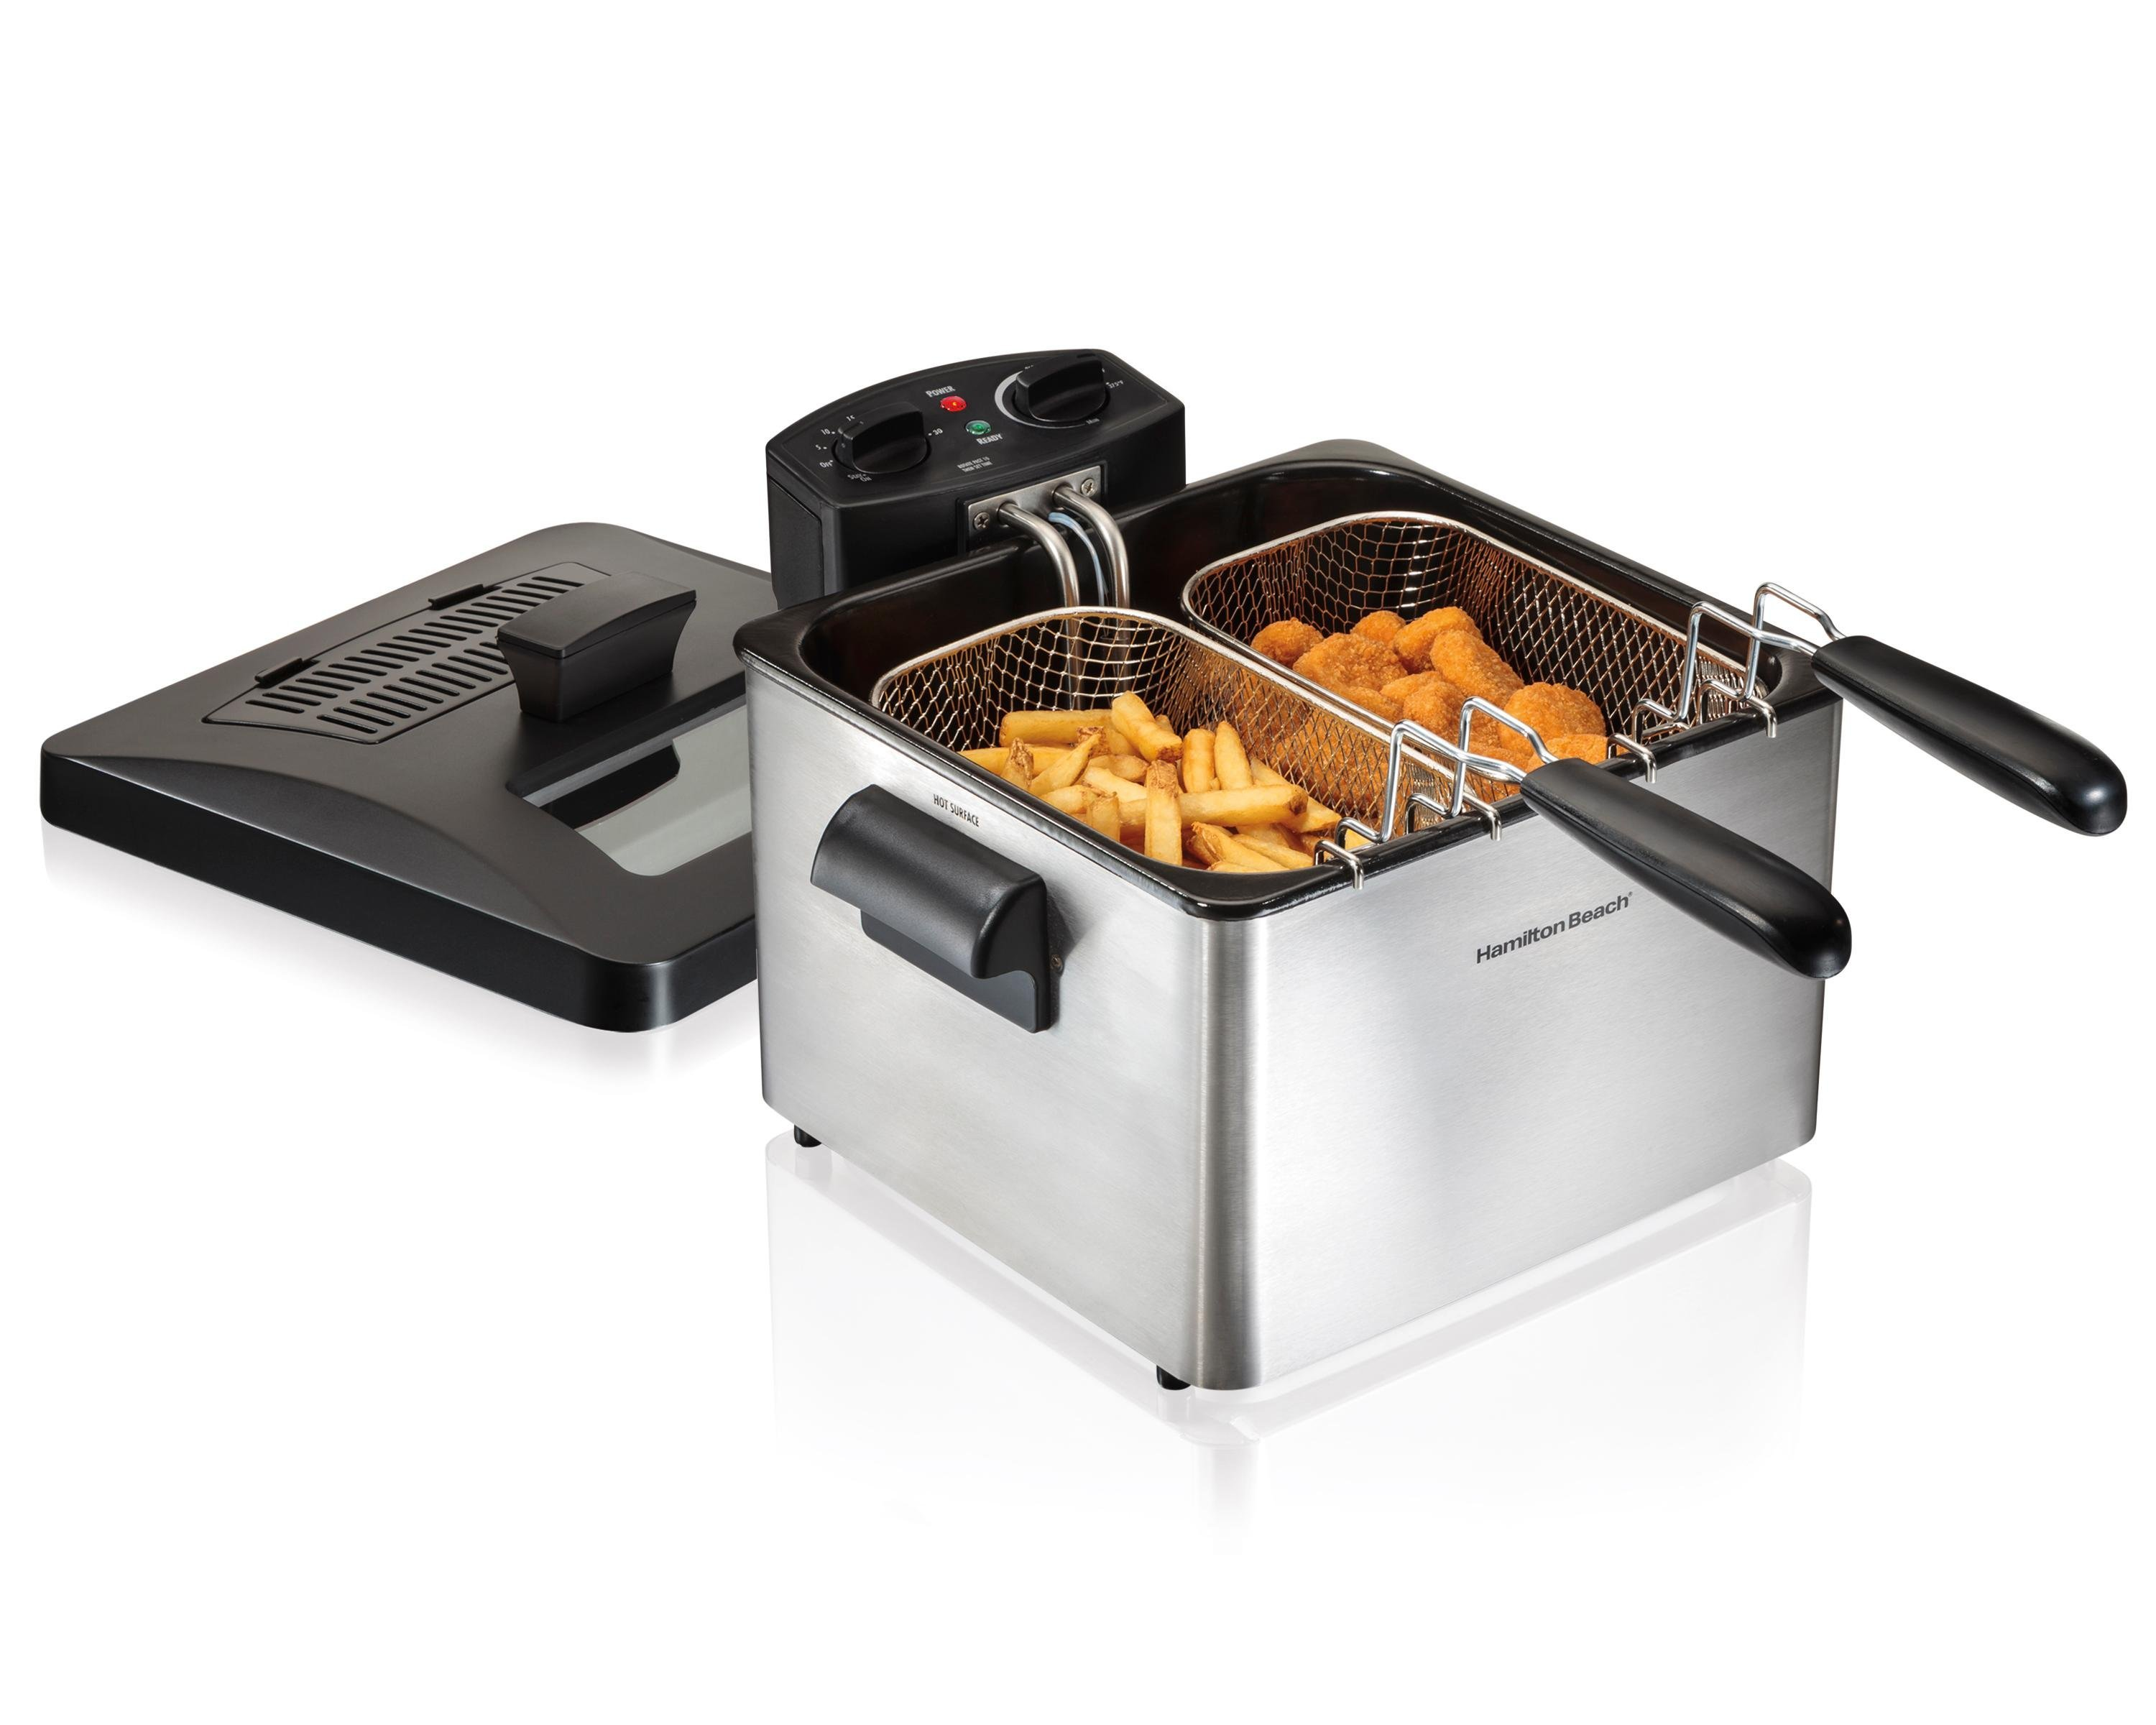 Amazon.com: Hamilton Beach (35034) Deep Fryer, With Basket